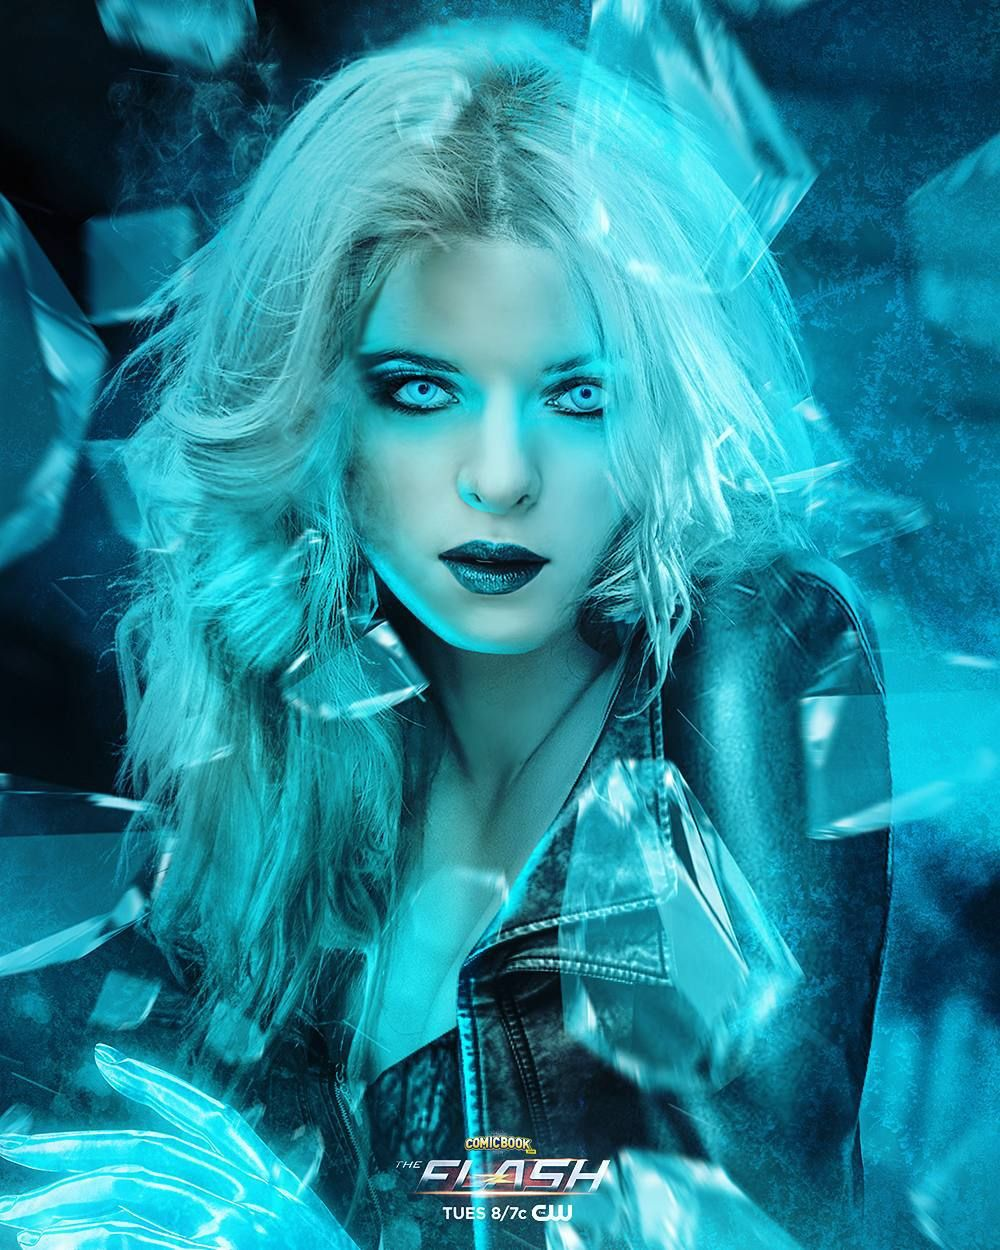 Only a few more hours @cwtheflash @dpanabaker Killer Frost